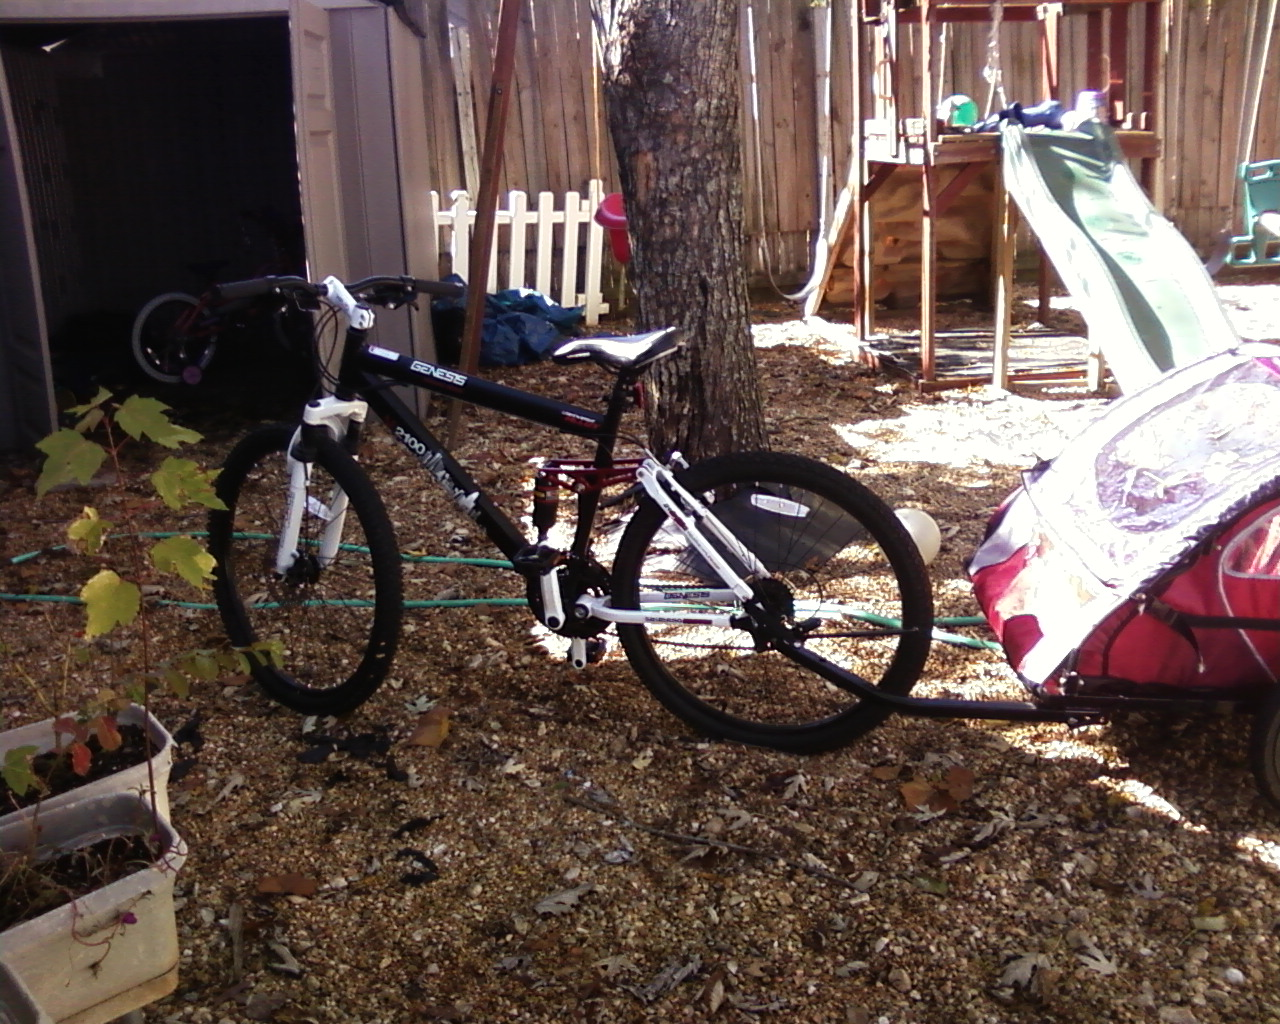 ... handlebars, stock grips, InStep child carrier hitch, and kick stand at